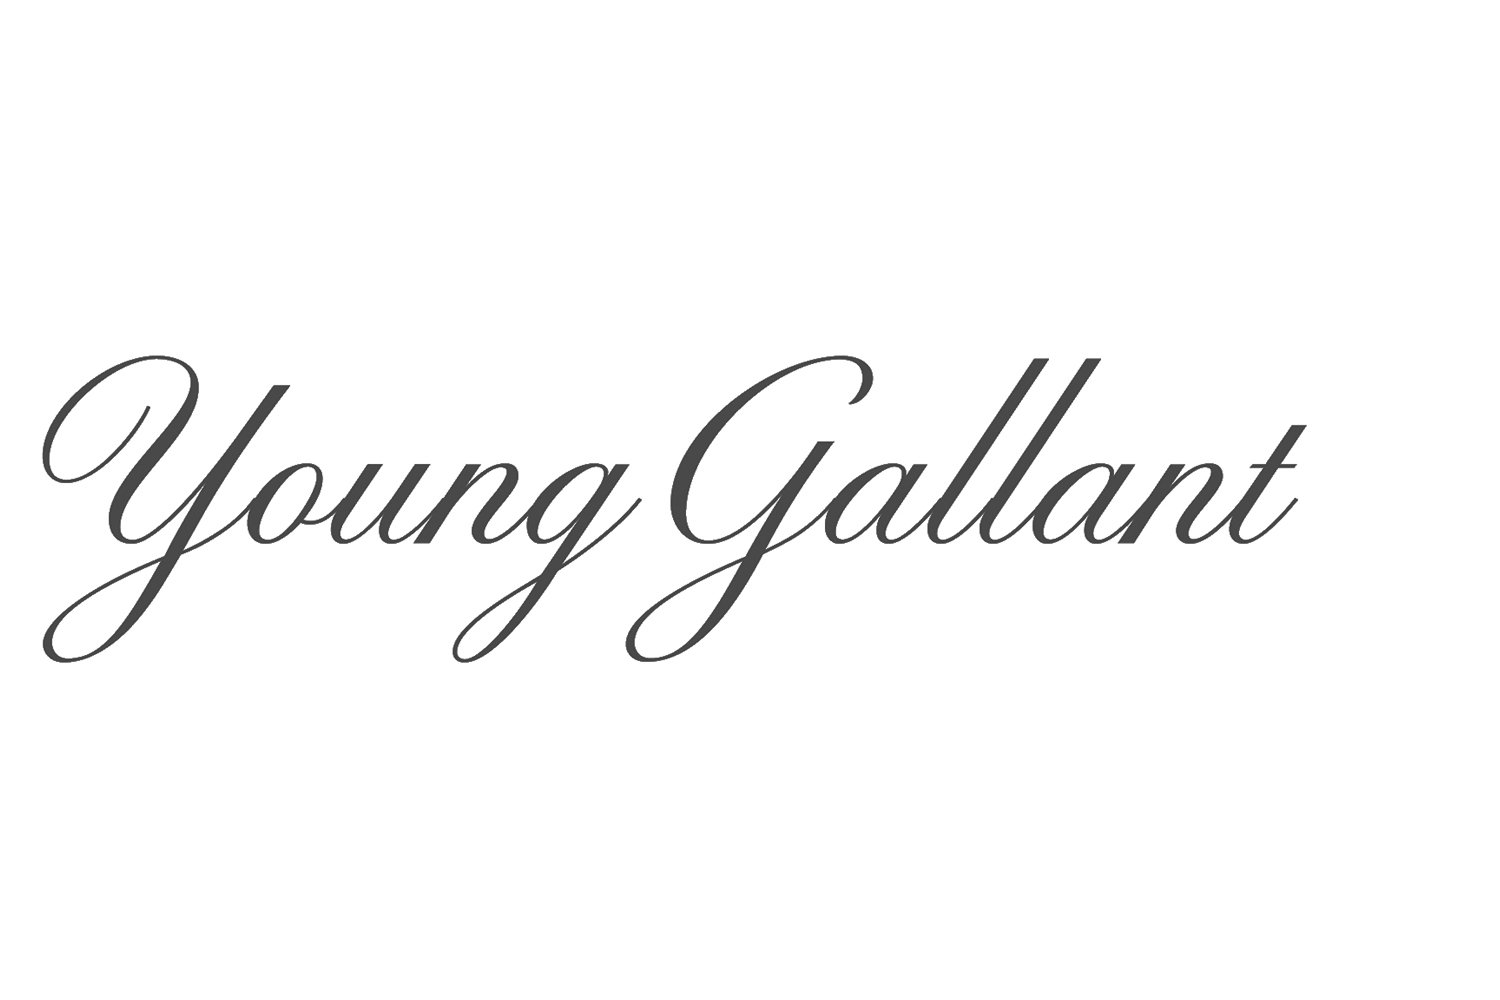 Young Gallant